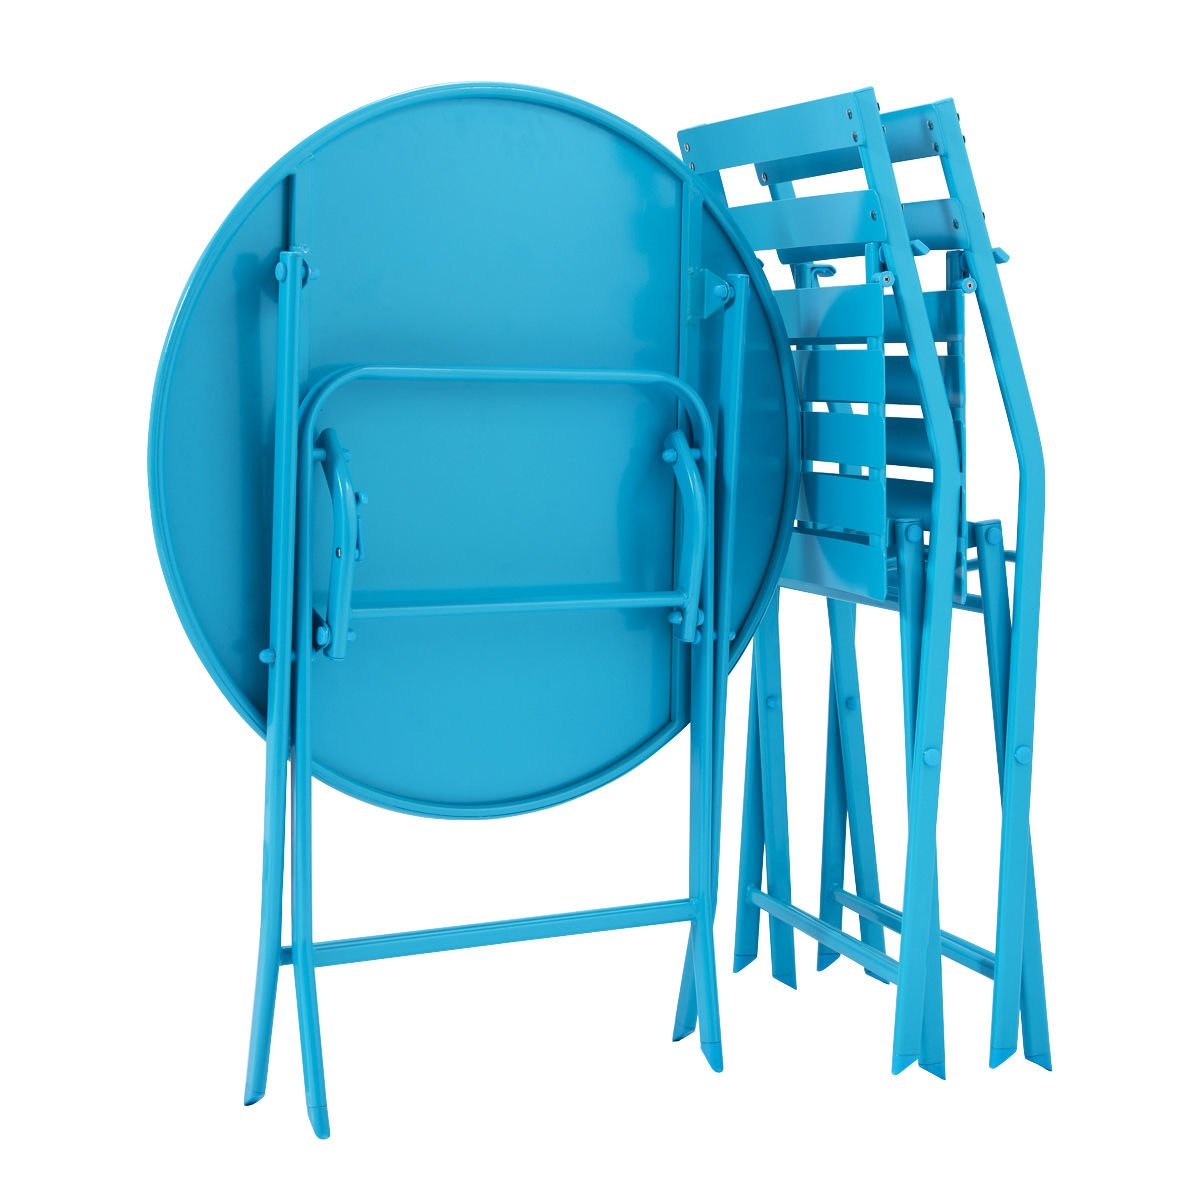 3 Pcs. Blue Table Chair Set Foldable Outdoor Patio Garden Pool Metal Furniture by Allblessings (Image #5)